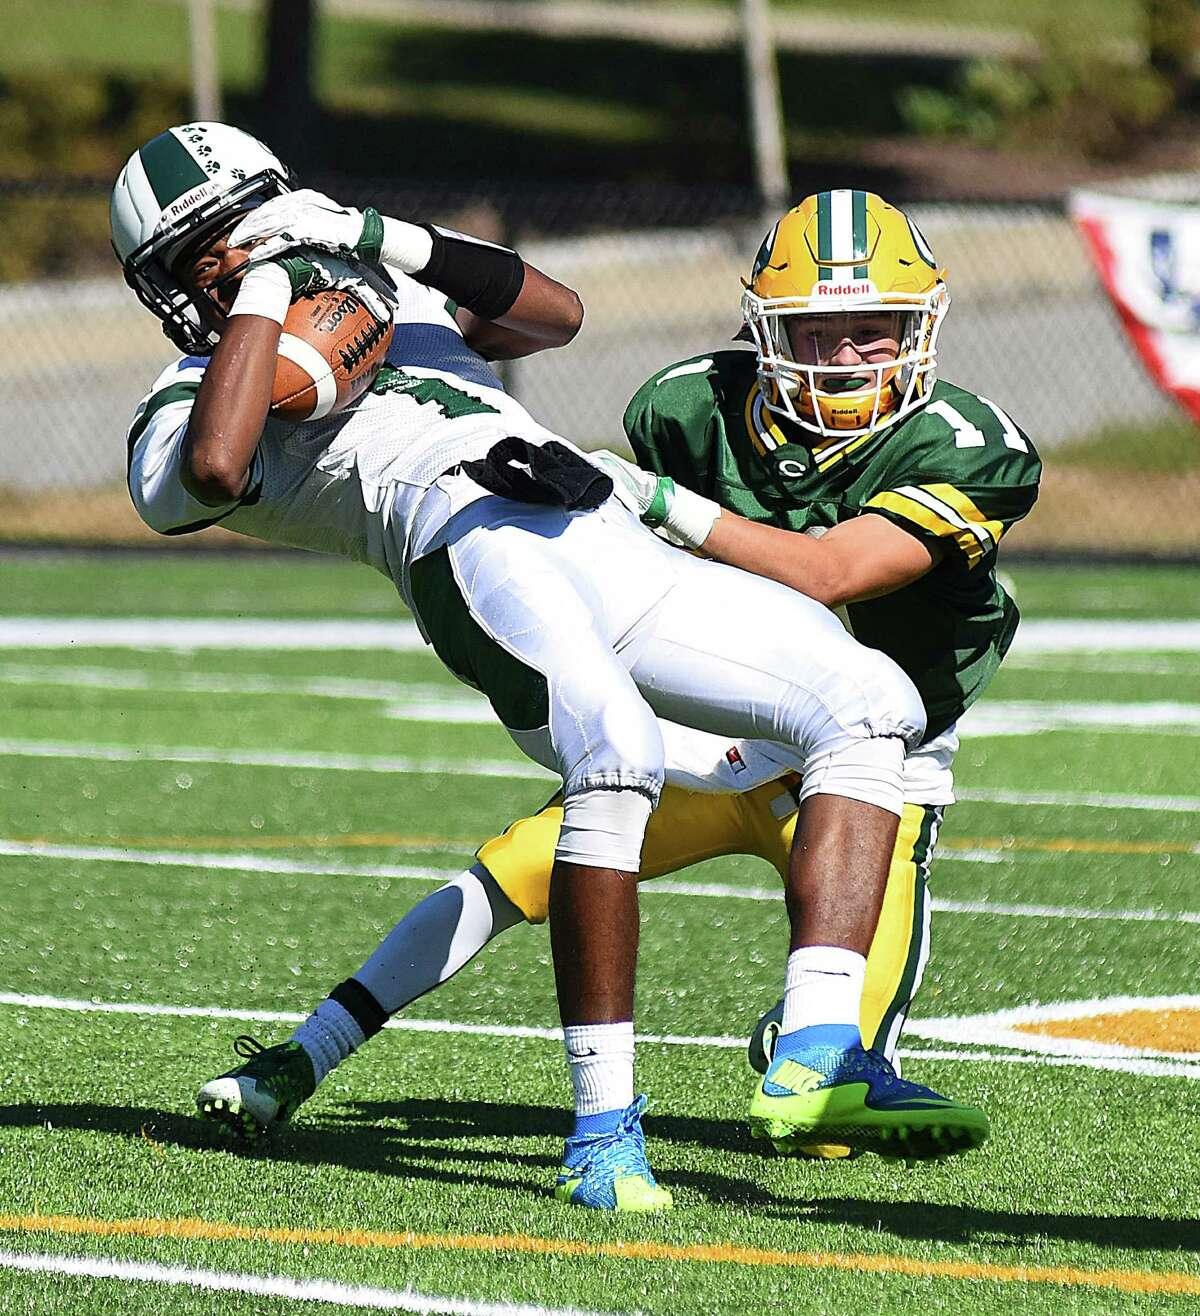 Norwalk wide receiver Jalen Elliott, left, makes an off-balance catch after getting hit by Trinity Catholic's Mike Riddle during Saturday's FCIAC football game at Gaglio Field in Stamford.